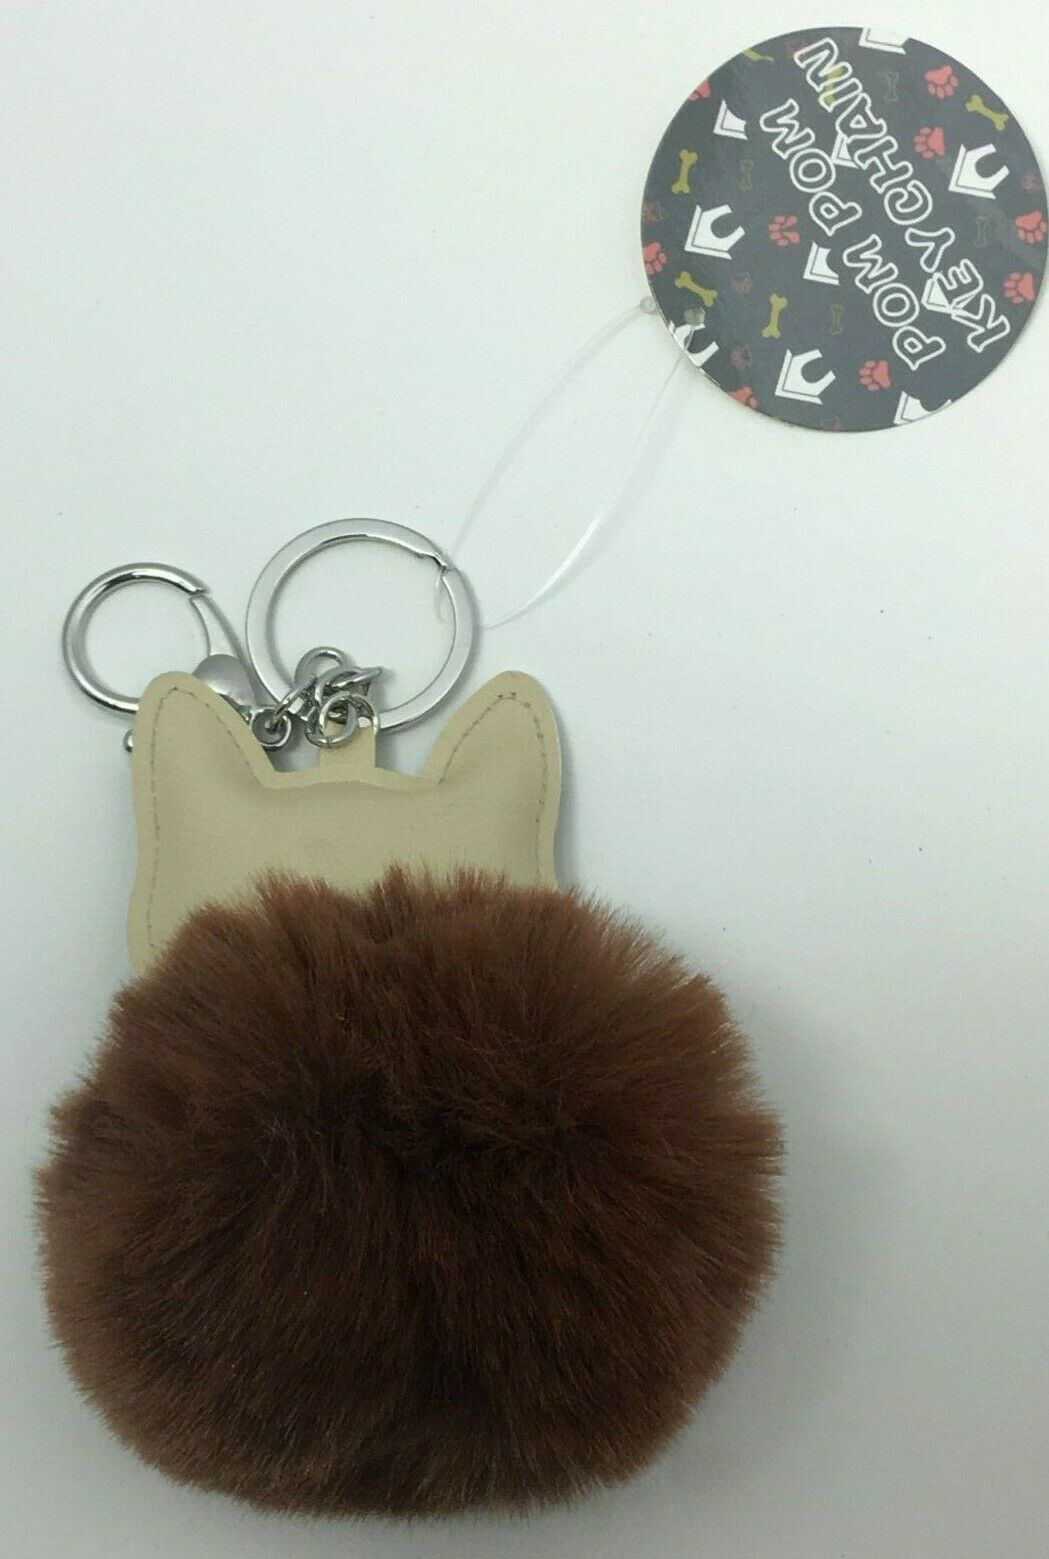 Royal Deluxe Accessories Brown Pom Pom Dog Keychain, Free Shipping